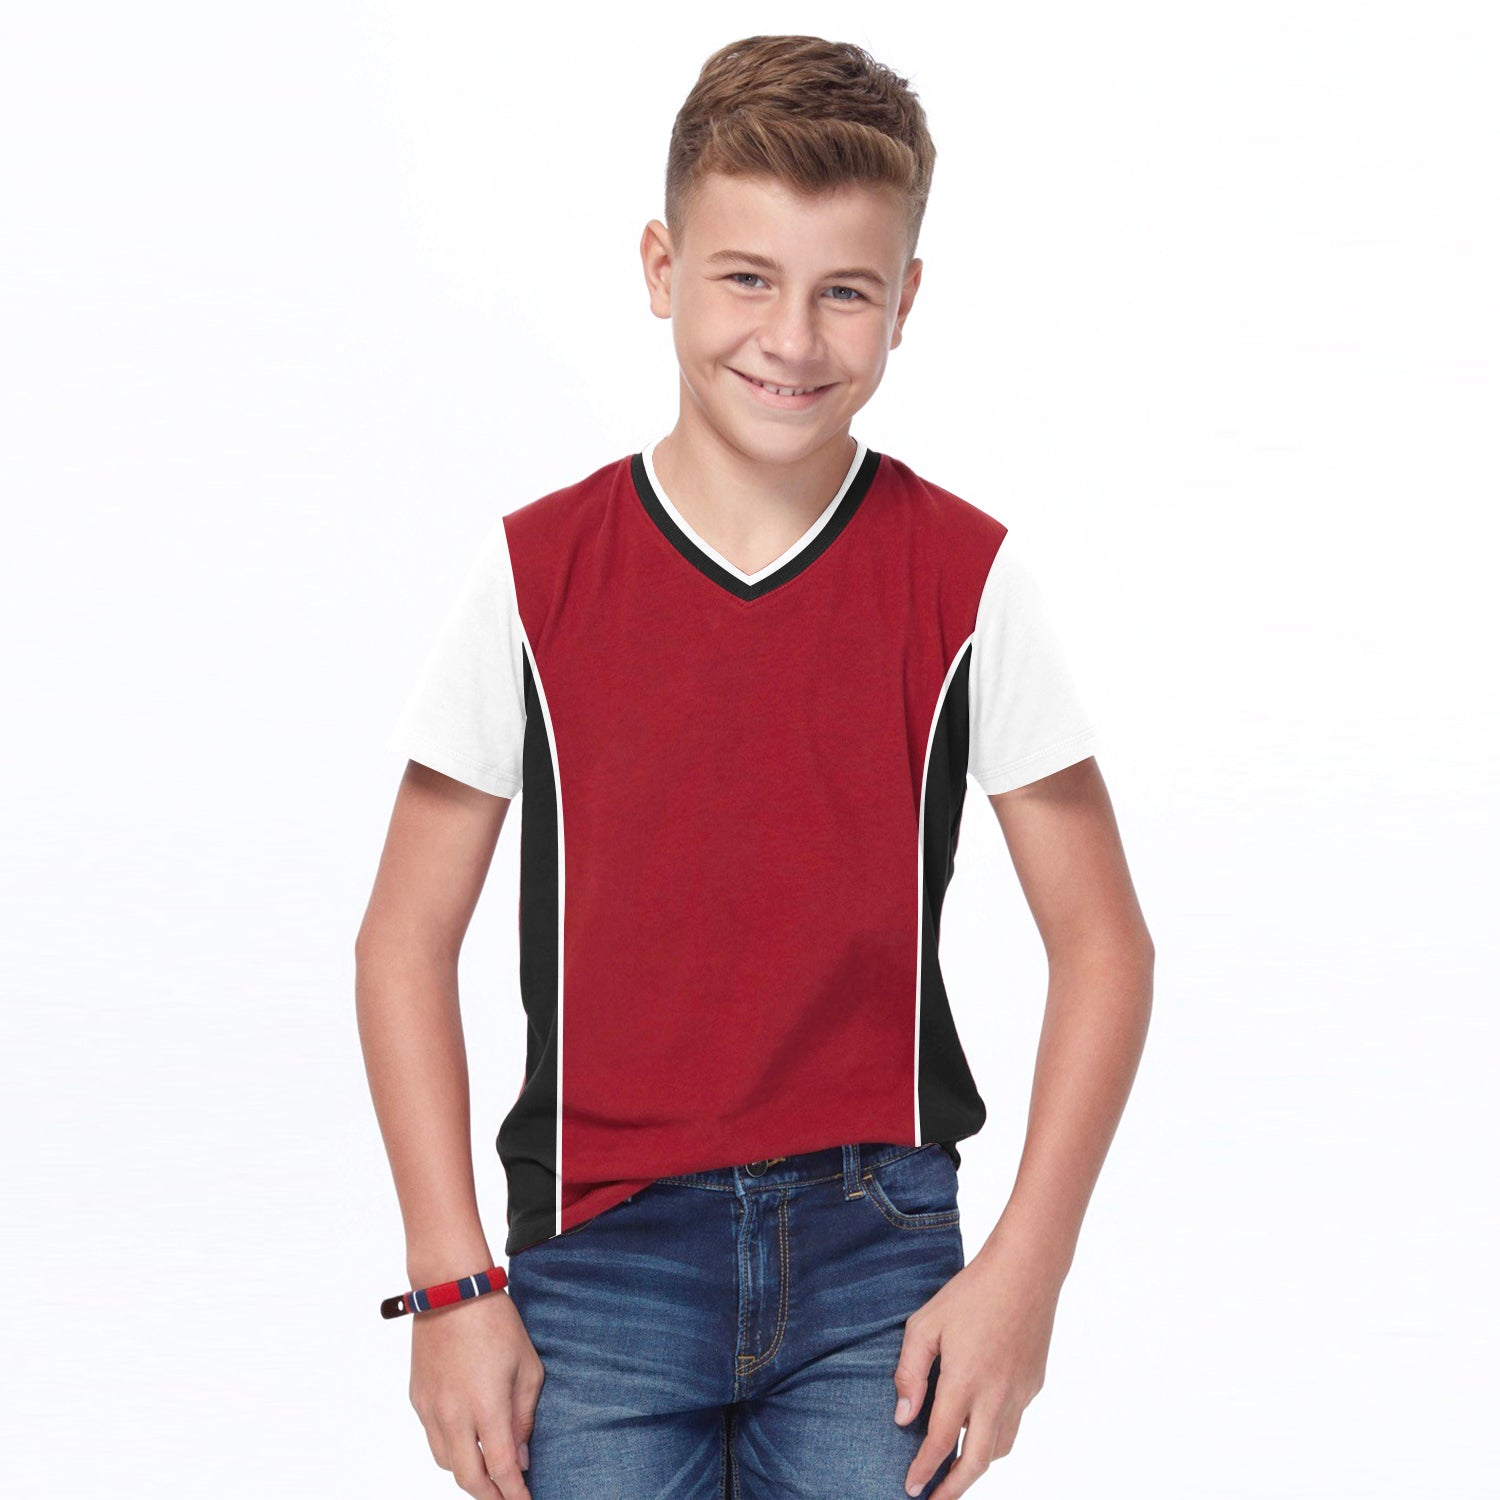 Next Sports Wear V Neck Tee Shirt For Kids-BE9099